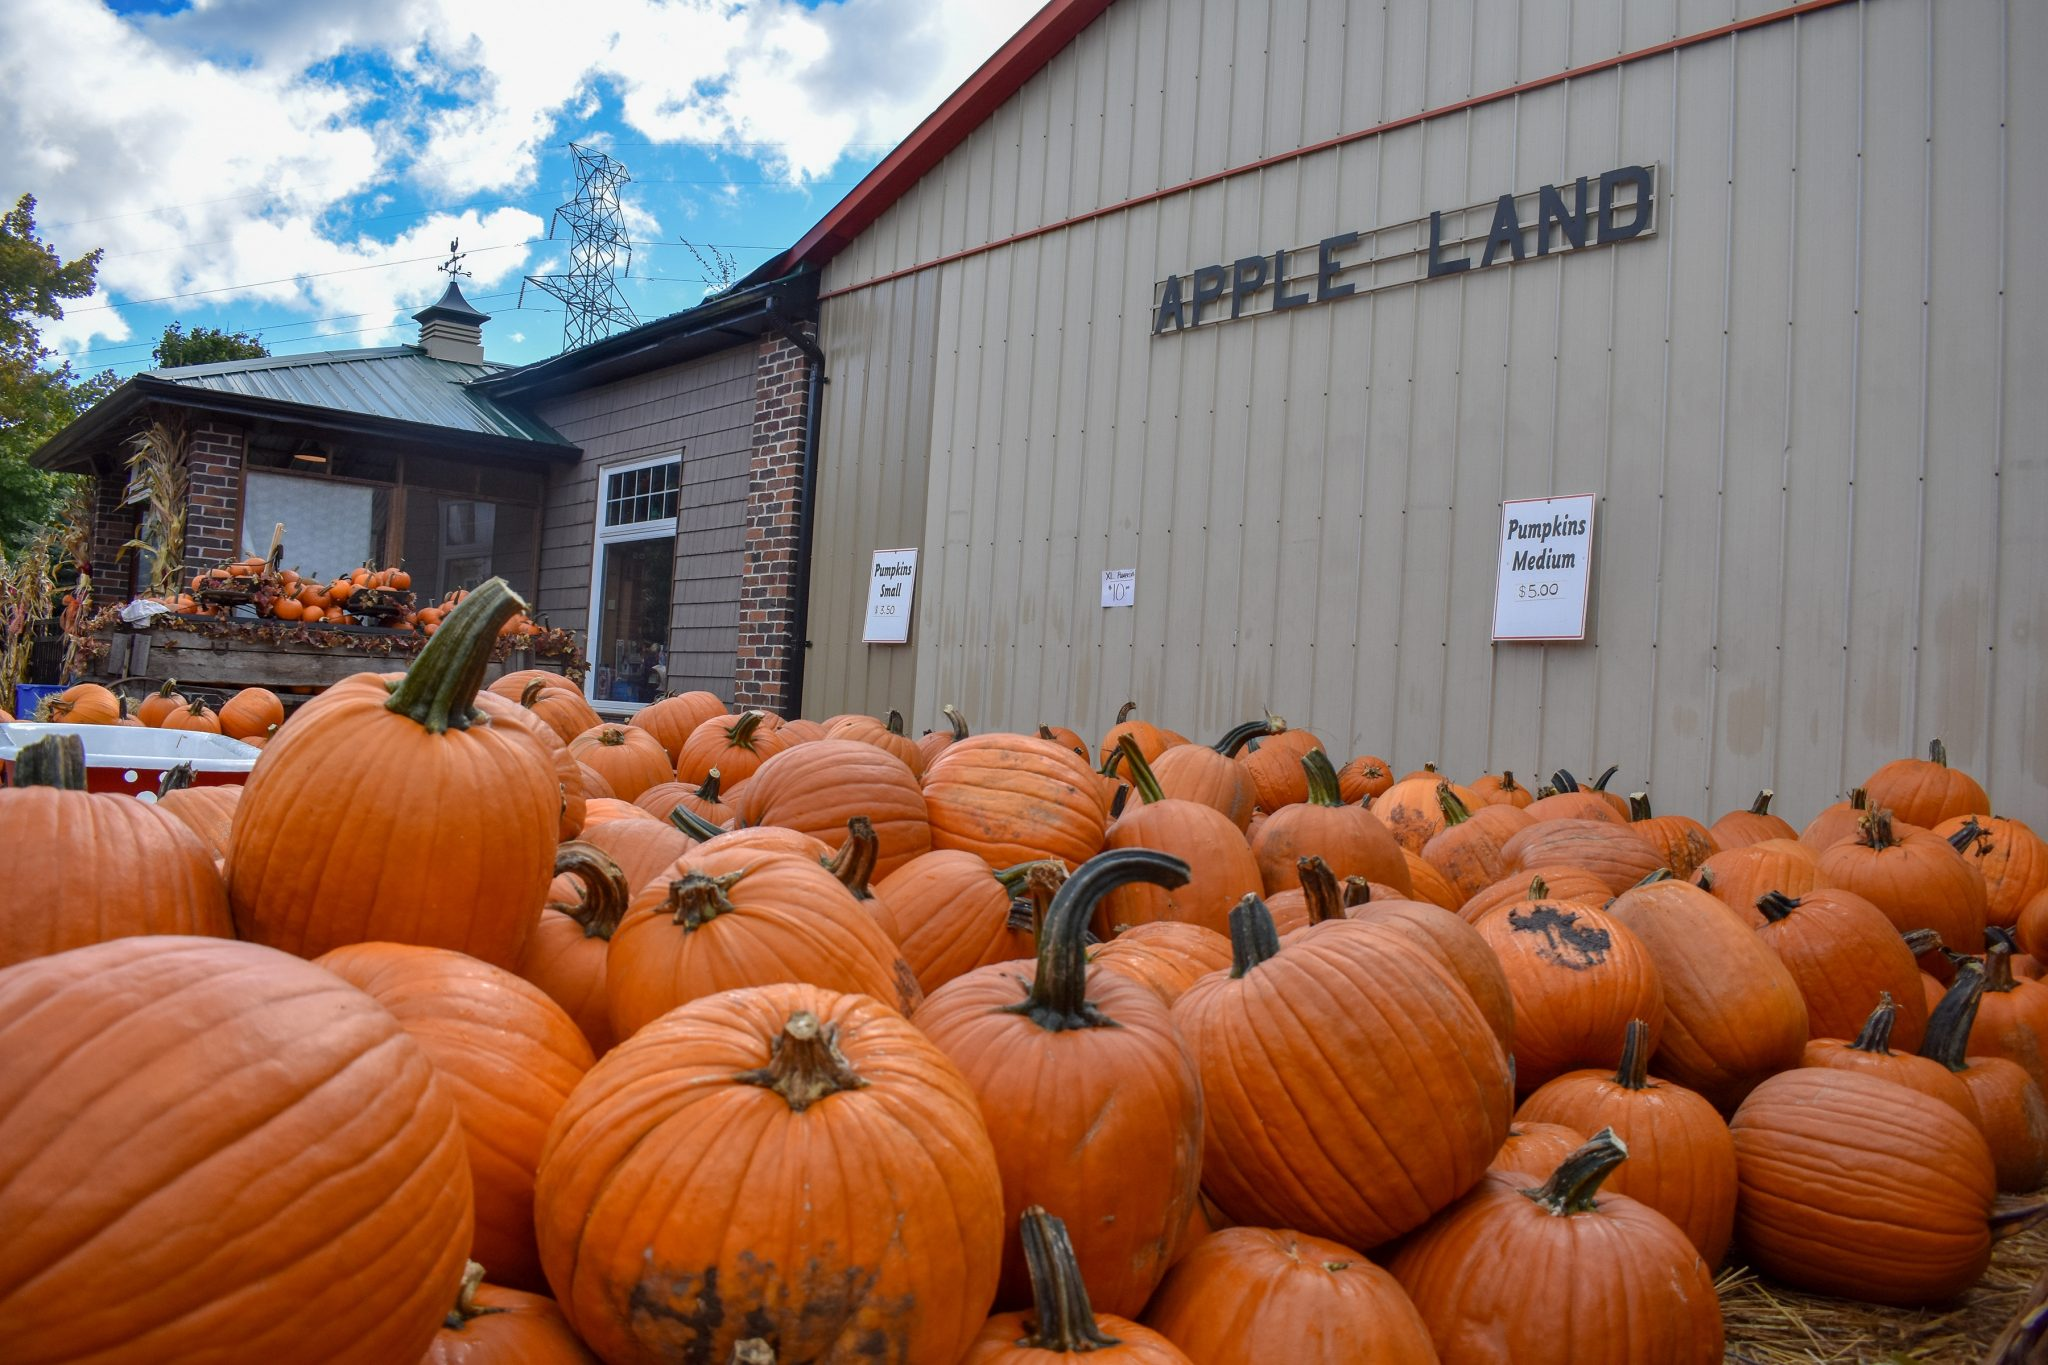 Pumpkins sit ready to go home next to the Apple Land Station store. Photo by Laura Thorne.